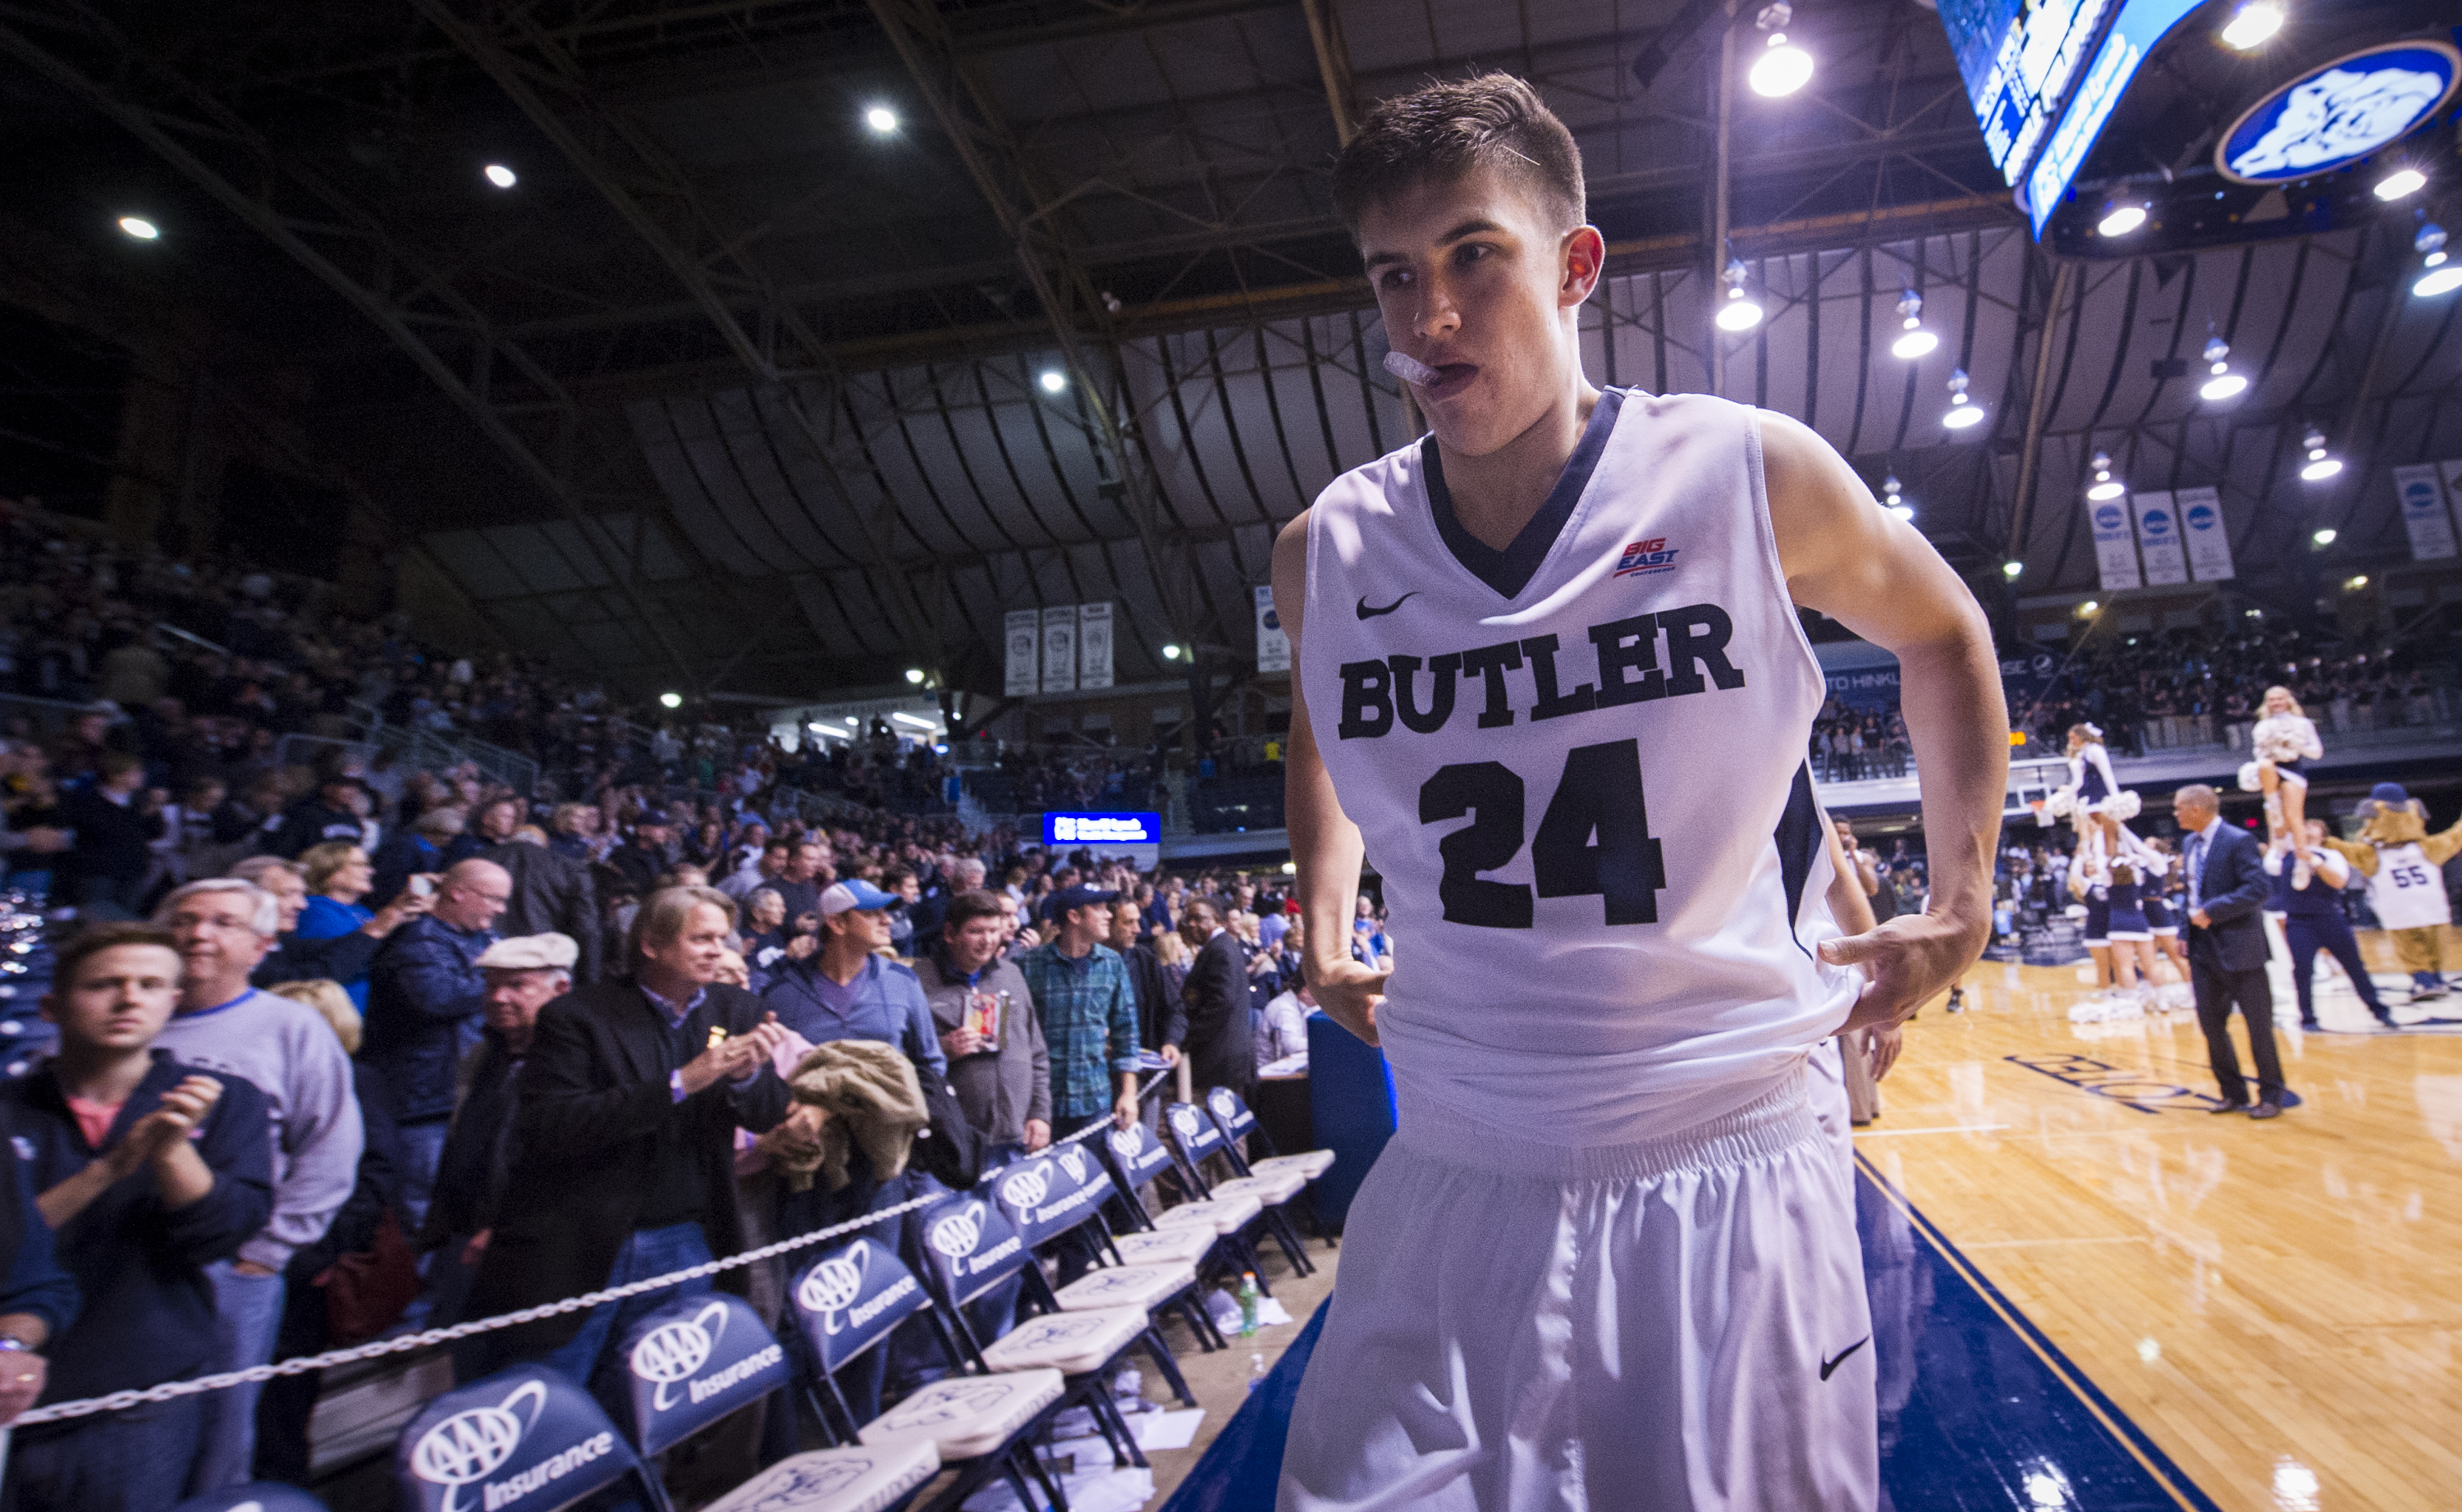 Butler guard Kellen Dunham (24) walks off the court after an NCAA college basketball game, Saturday, Nov. 14, 2015, in Indianapolis, in which he scored 24 points against Citadel. Butler won 144-71, setting a new school scoring record. (AP Photo/Doug McSch